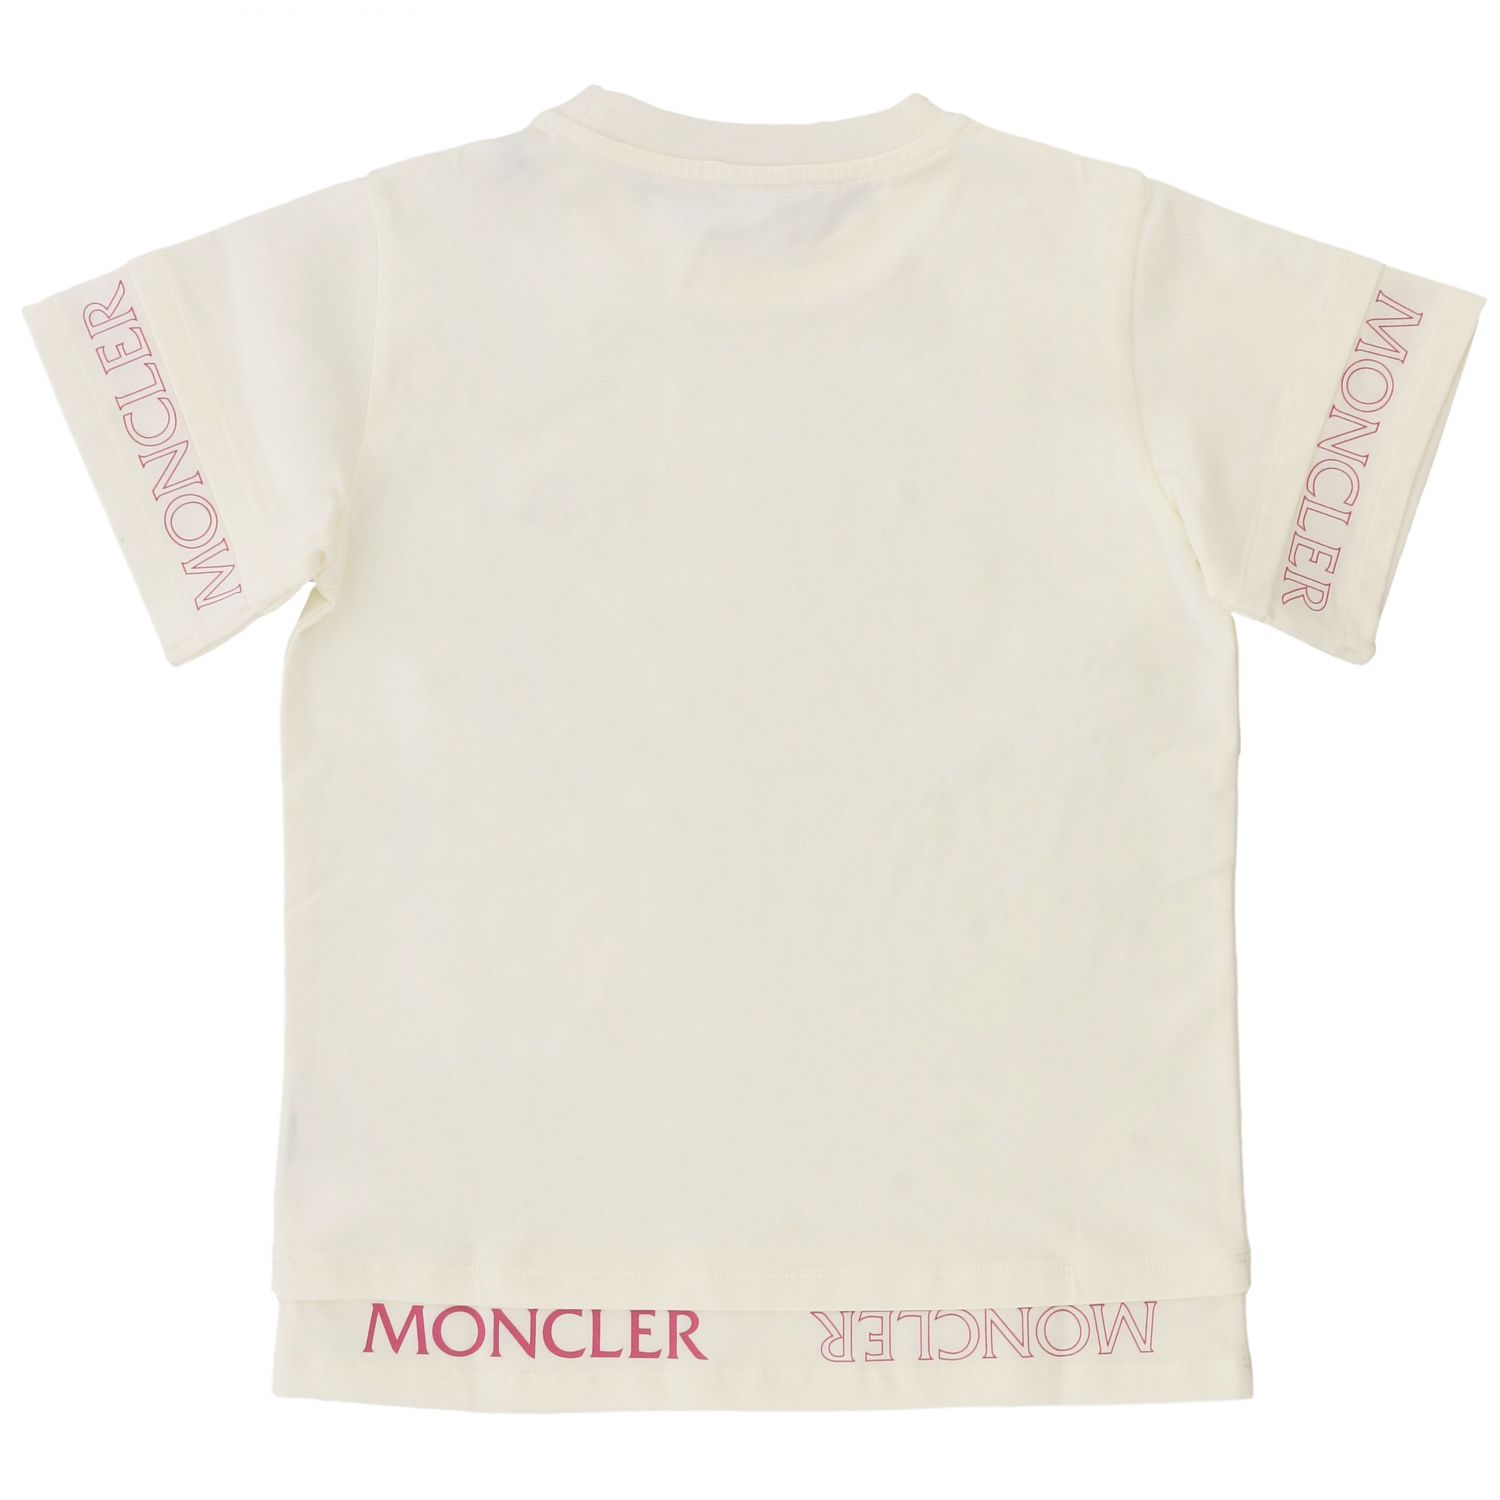 Moncler short-sleeved T-shirt with logo white 2